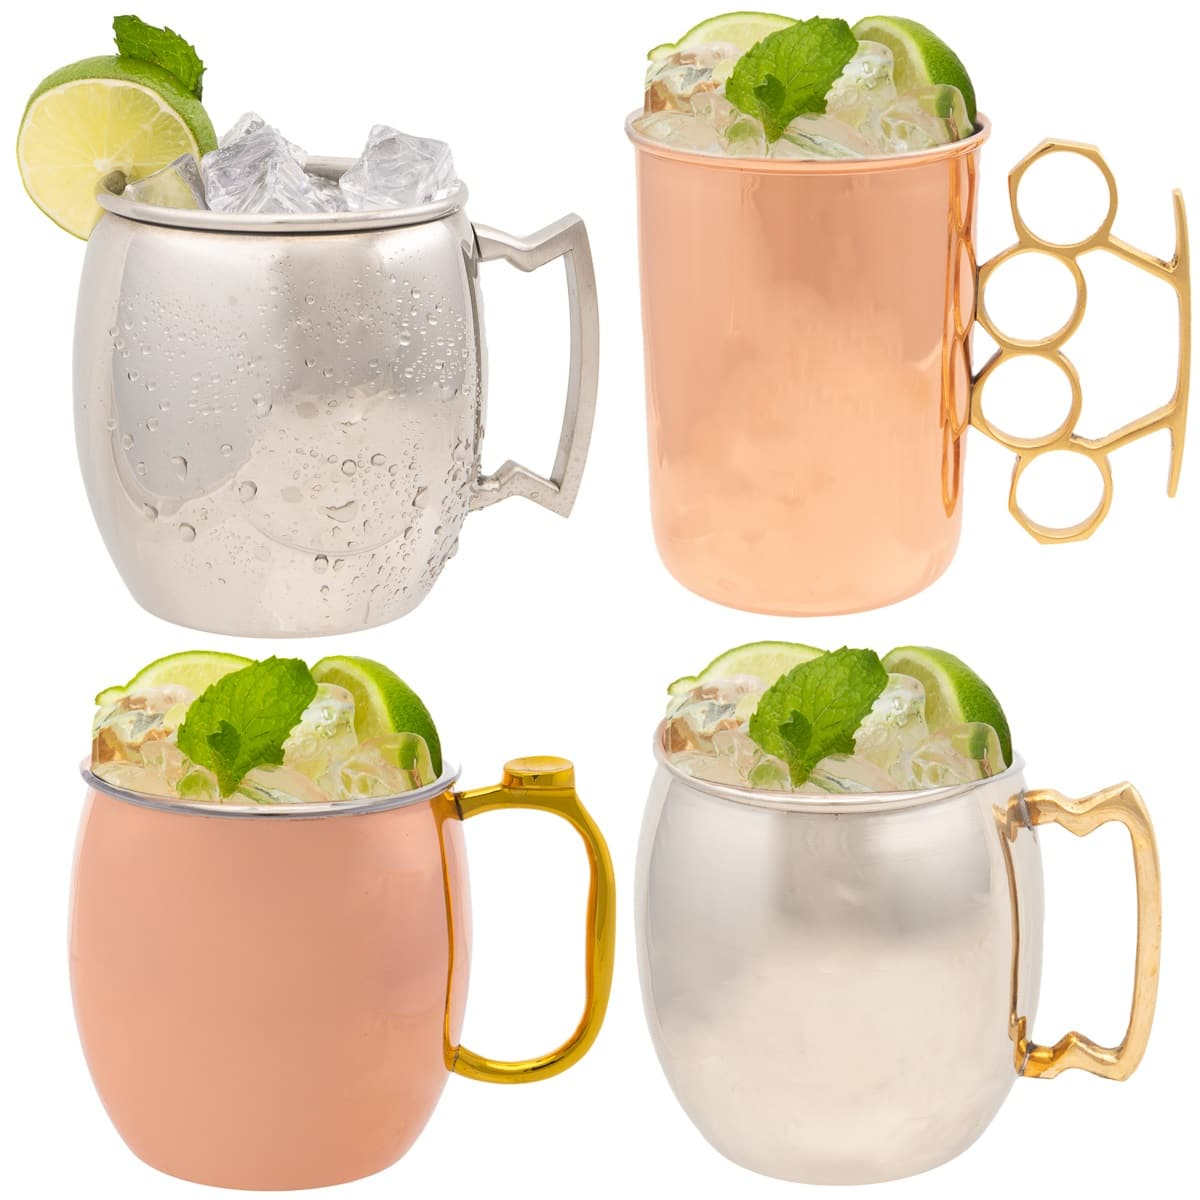 4 ODI Moscow Mule Mugs $11.49 and More + Free Shipping